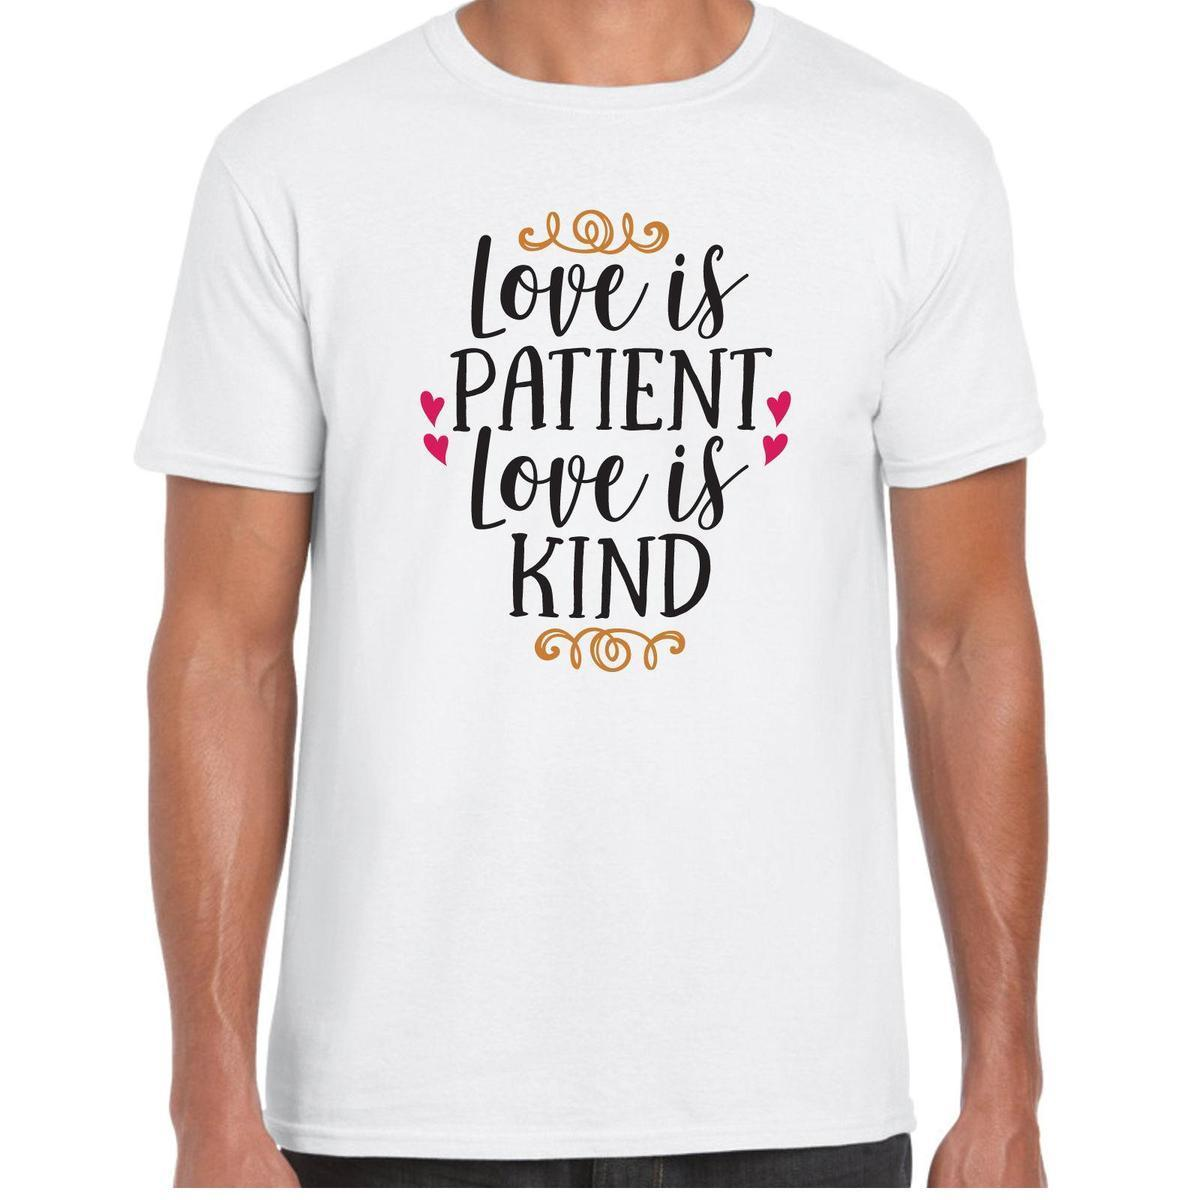 a23821c27 Love Is Patient Love Is Kind MensT Shirt Valentine Birthday Gift Long  Sleeve Tee Shirts Design Your Own T Shirts From Jie77, $14.67| DHgate.Com